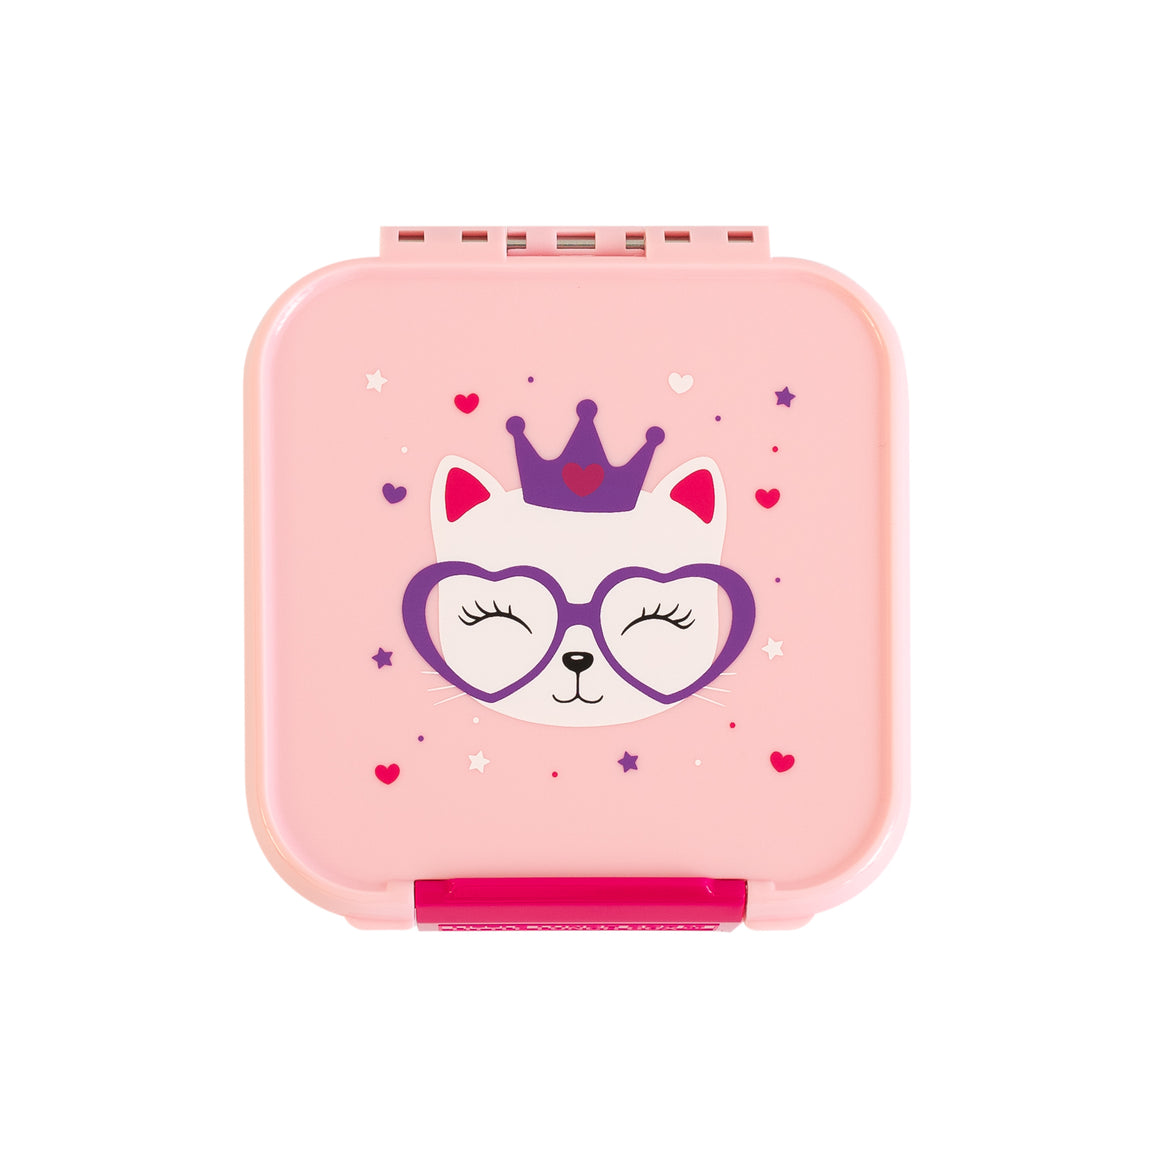 Little Lunch Box Co - Bento 2 - Kitty - phunkyBento